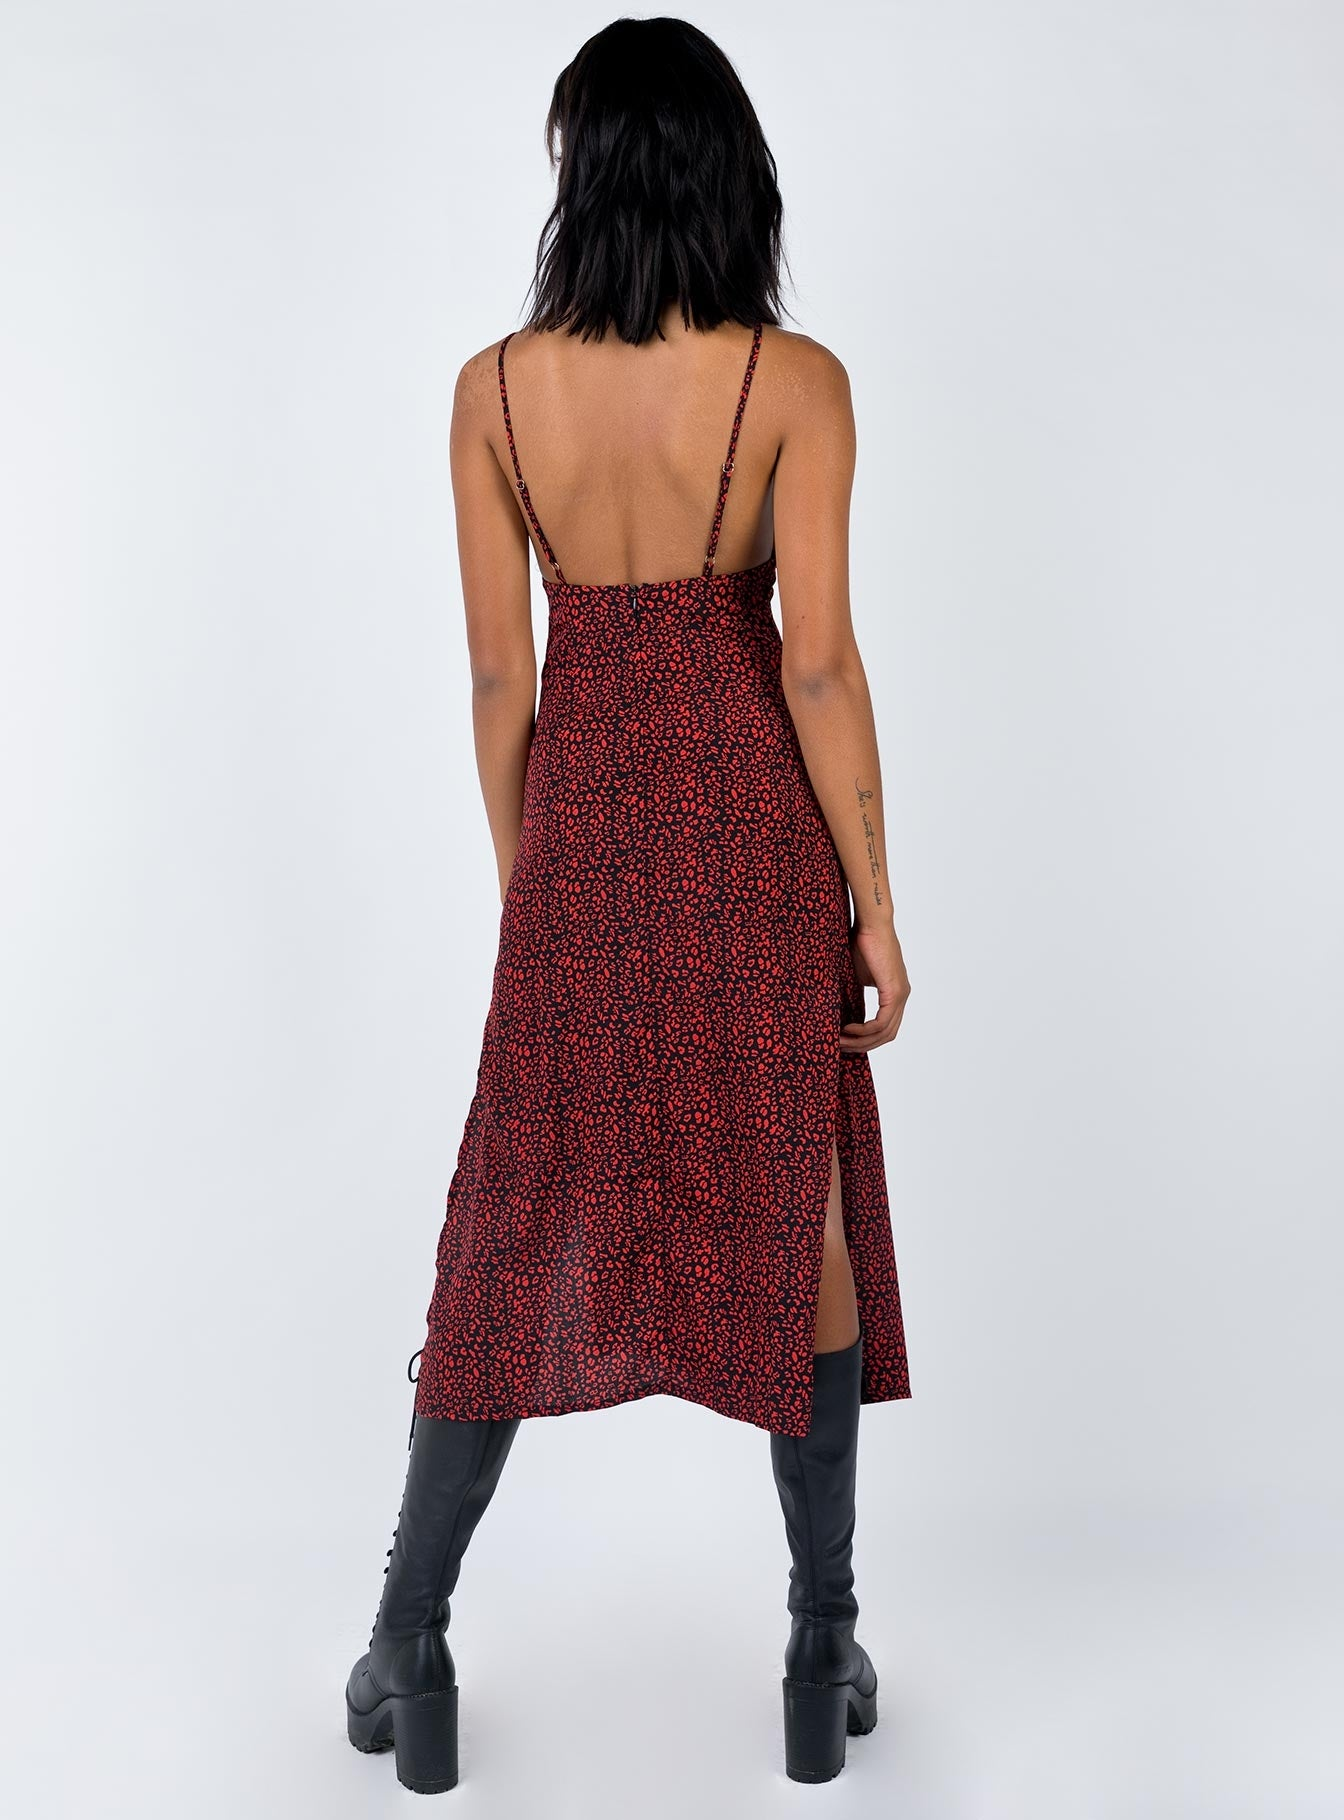 The Clement Maxi Dress Red Leopard Red/Black